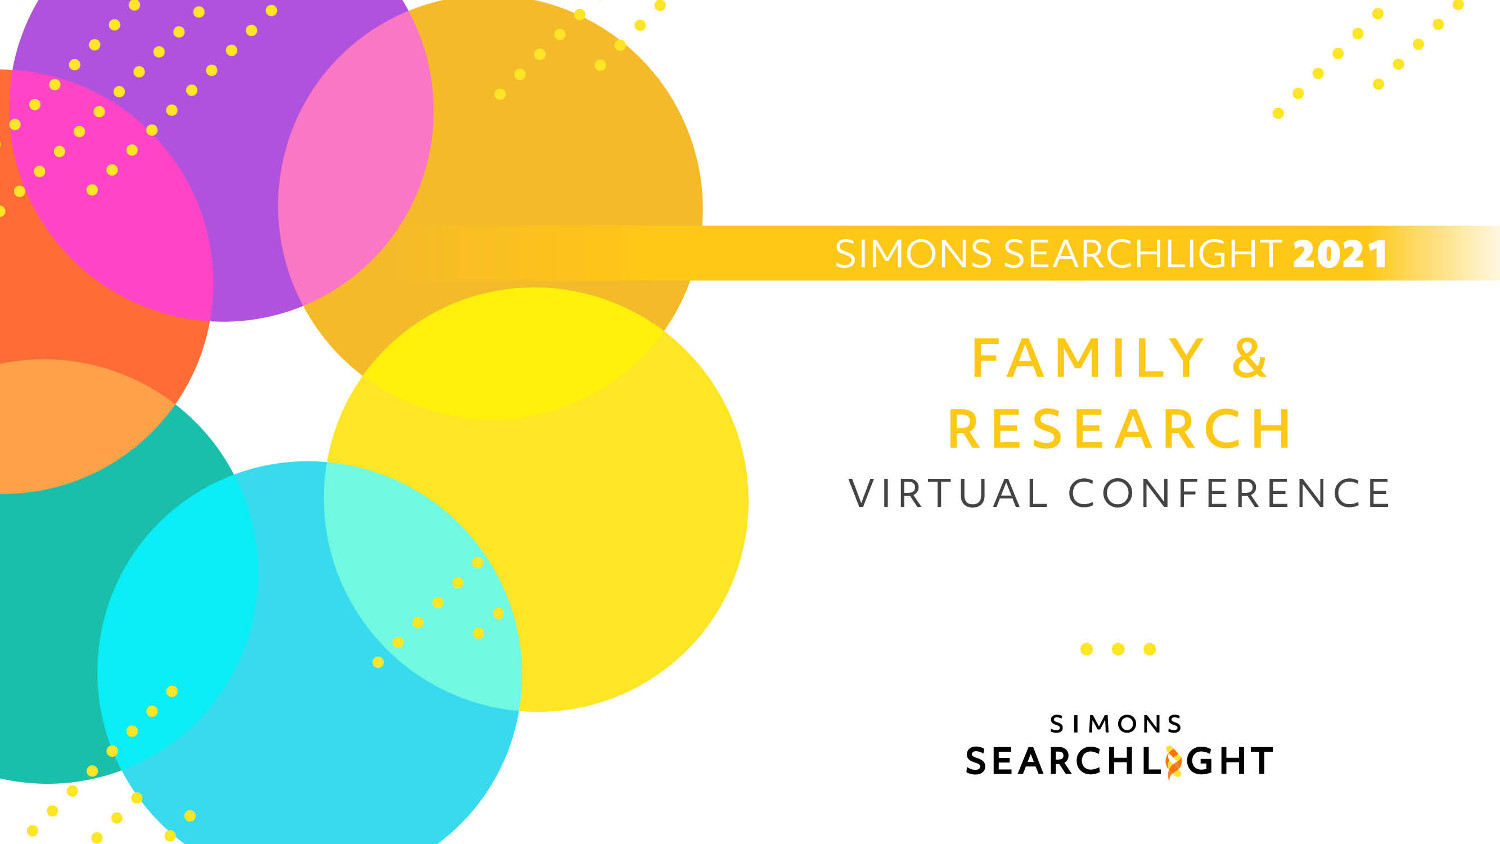 Simons Searchlight 2021 Family & Research Conference